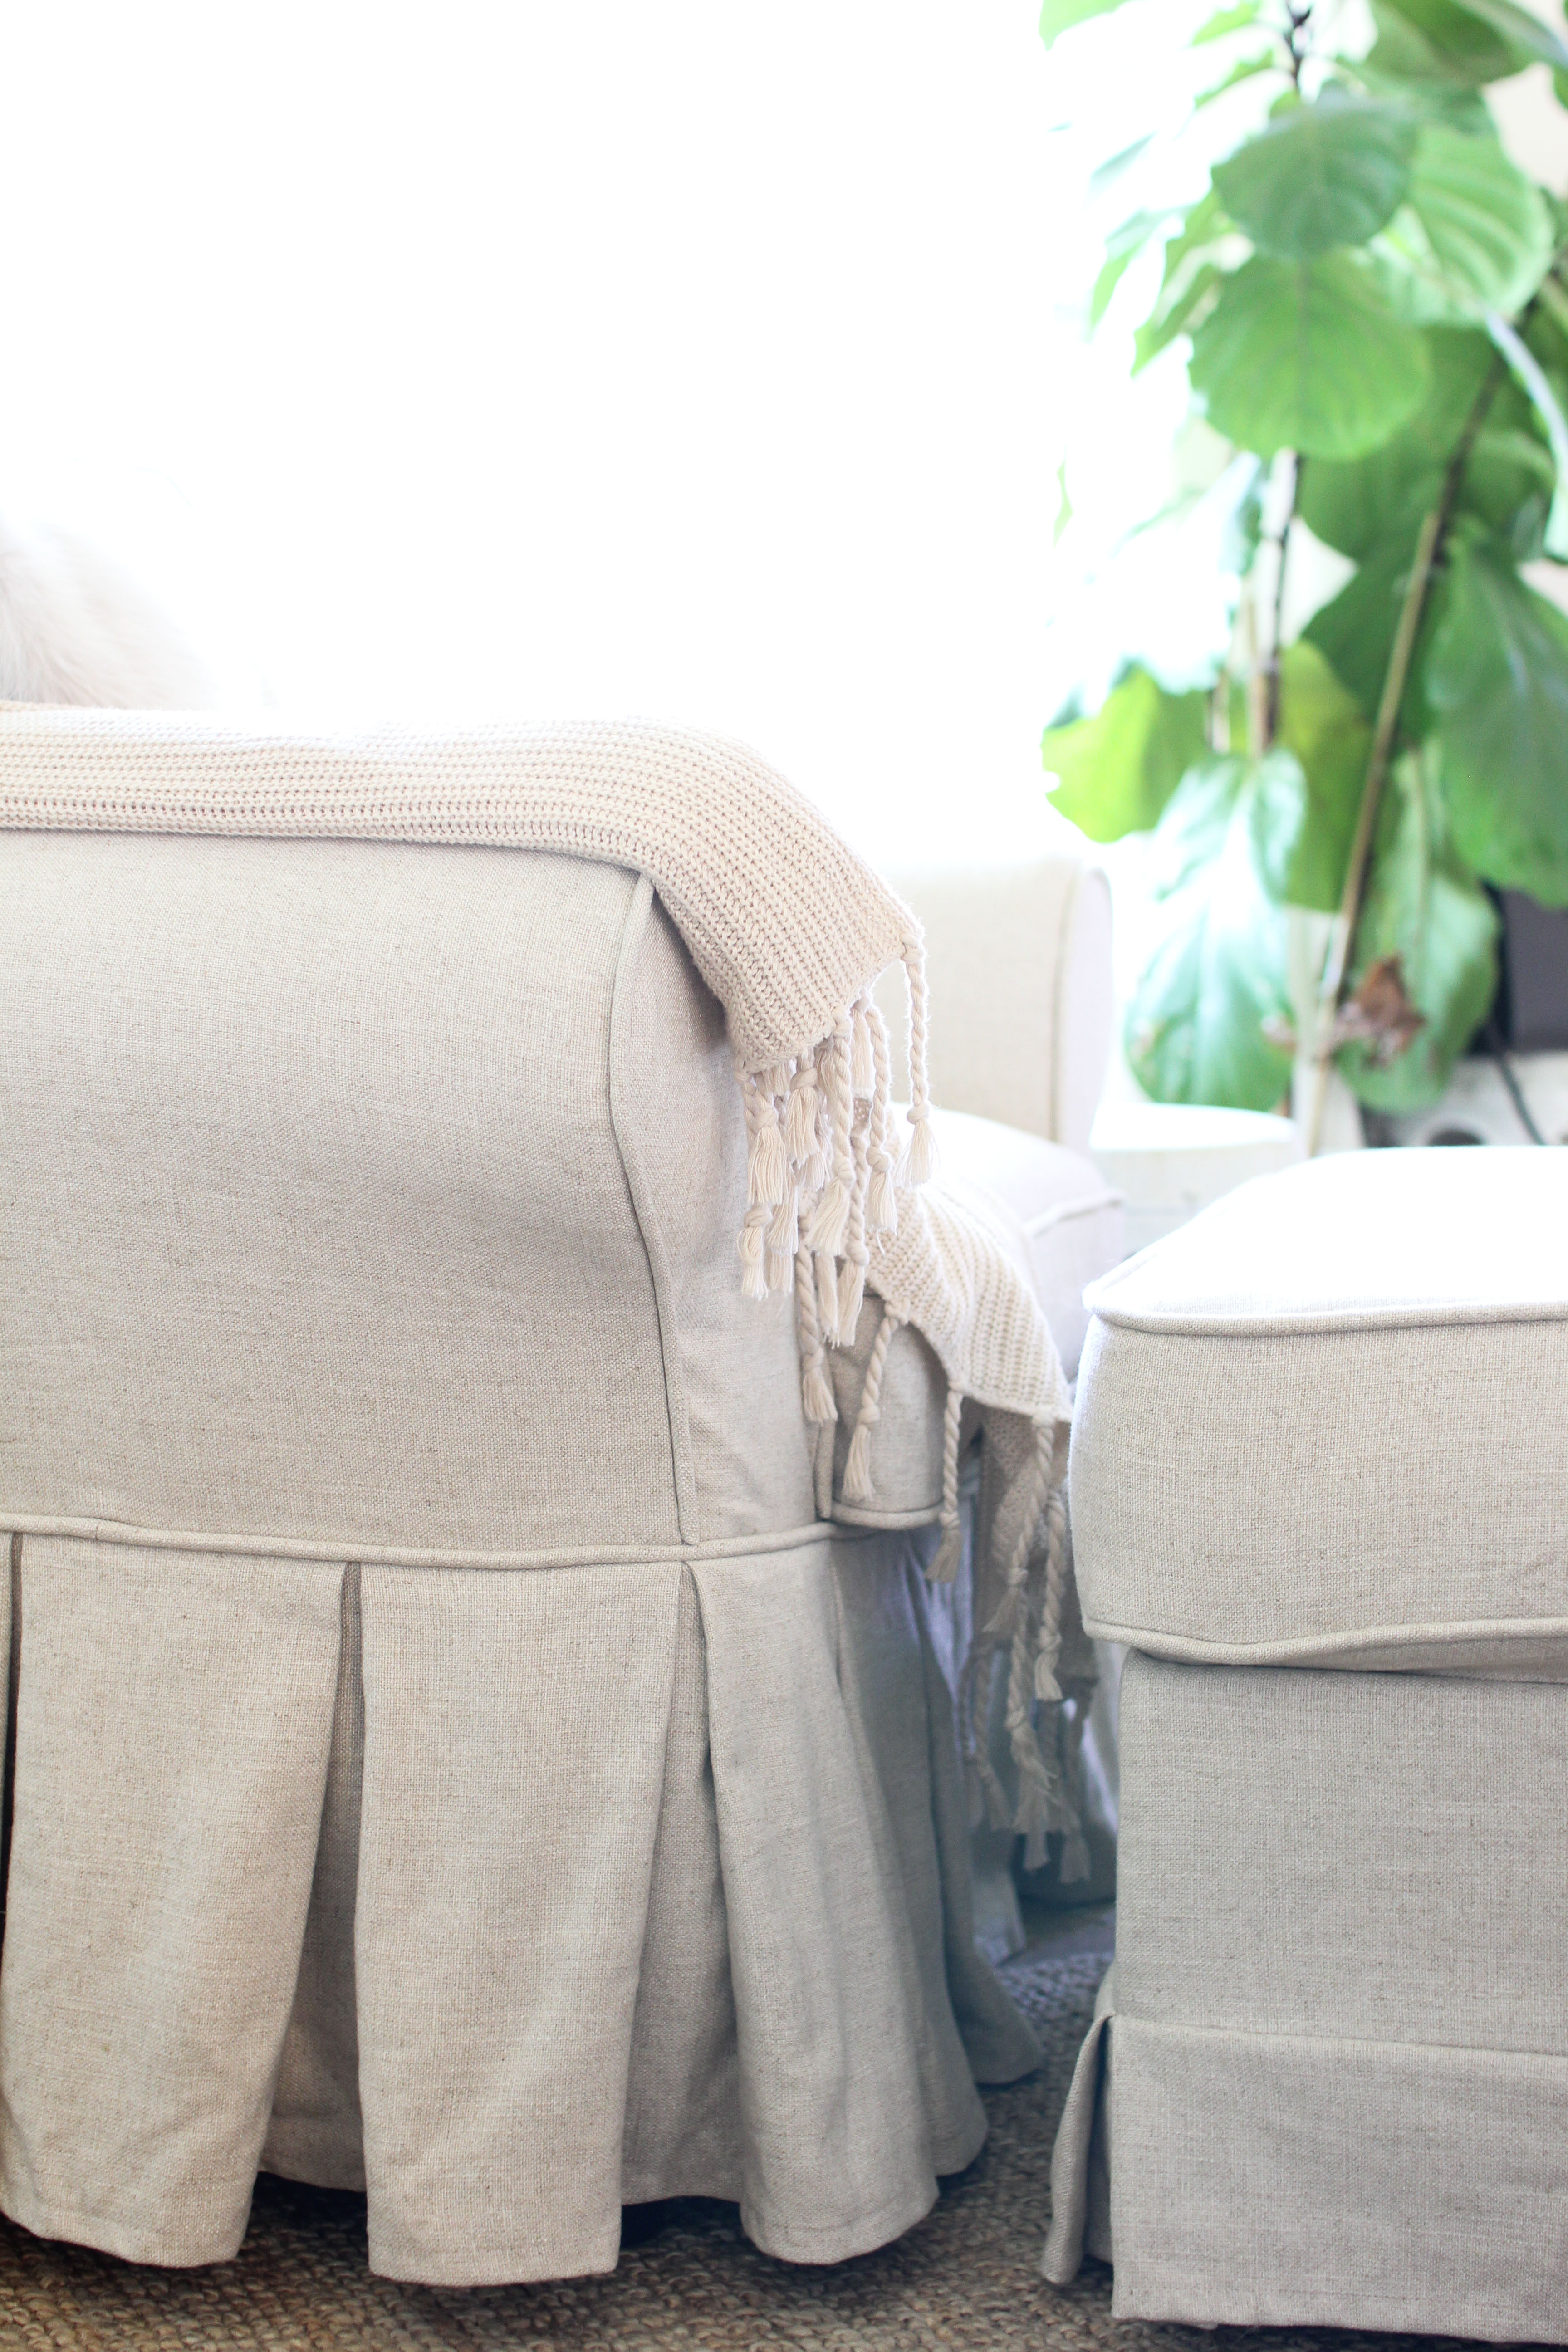 Dining Chair Covers with Pleats Detail